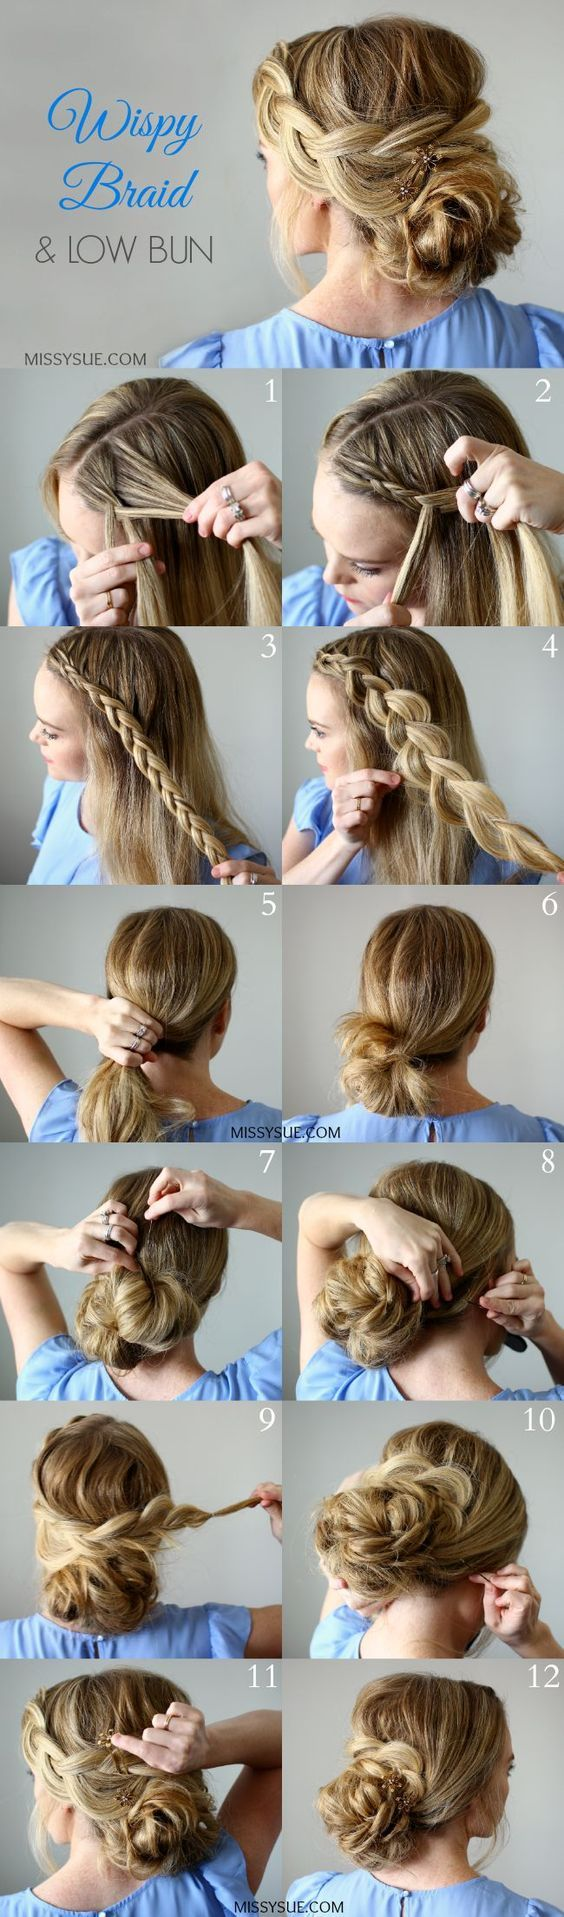 Don't get stuck into a hairstyle rut. Learn to style your hair in easy braids that anyone can master